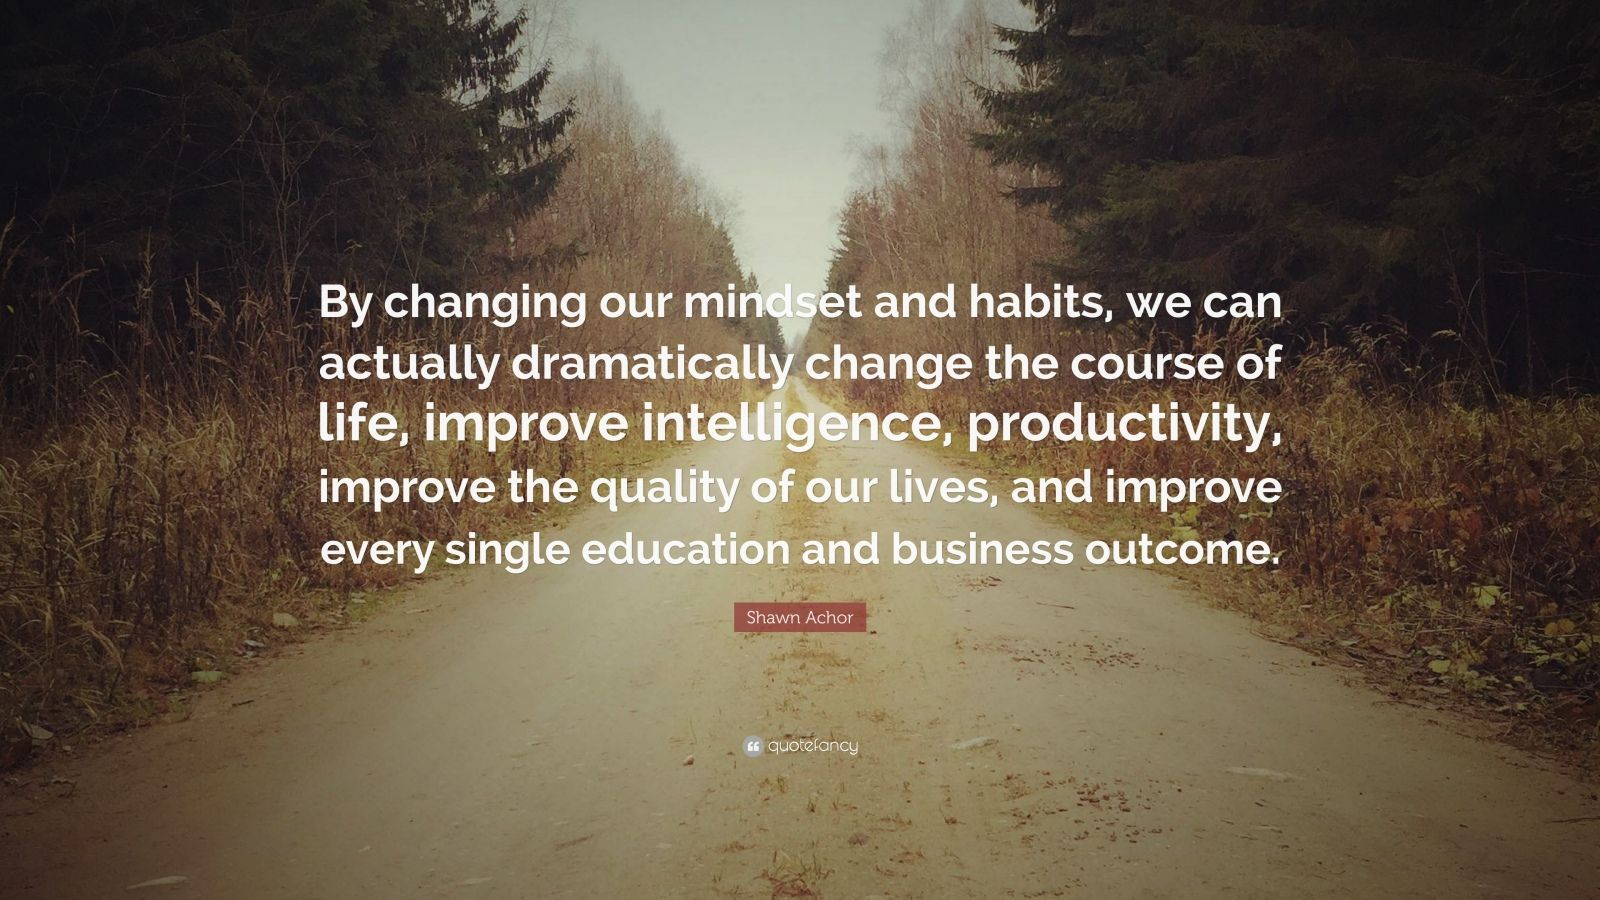 """Shawn Achor Quote: """"By changing our mindset and habits, we can actually dramatically change the course of life, improve intelligence, productivity, improve the quality of our lives, and improve every single education and business outcome."""""""